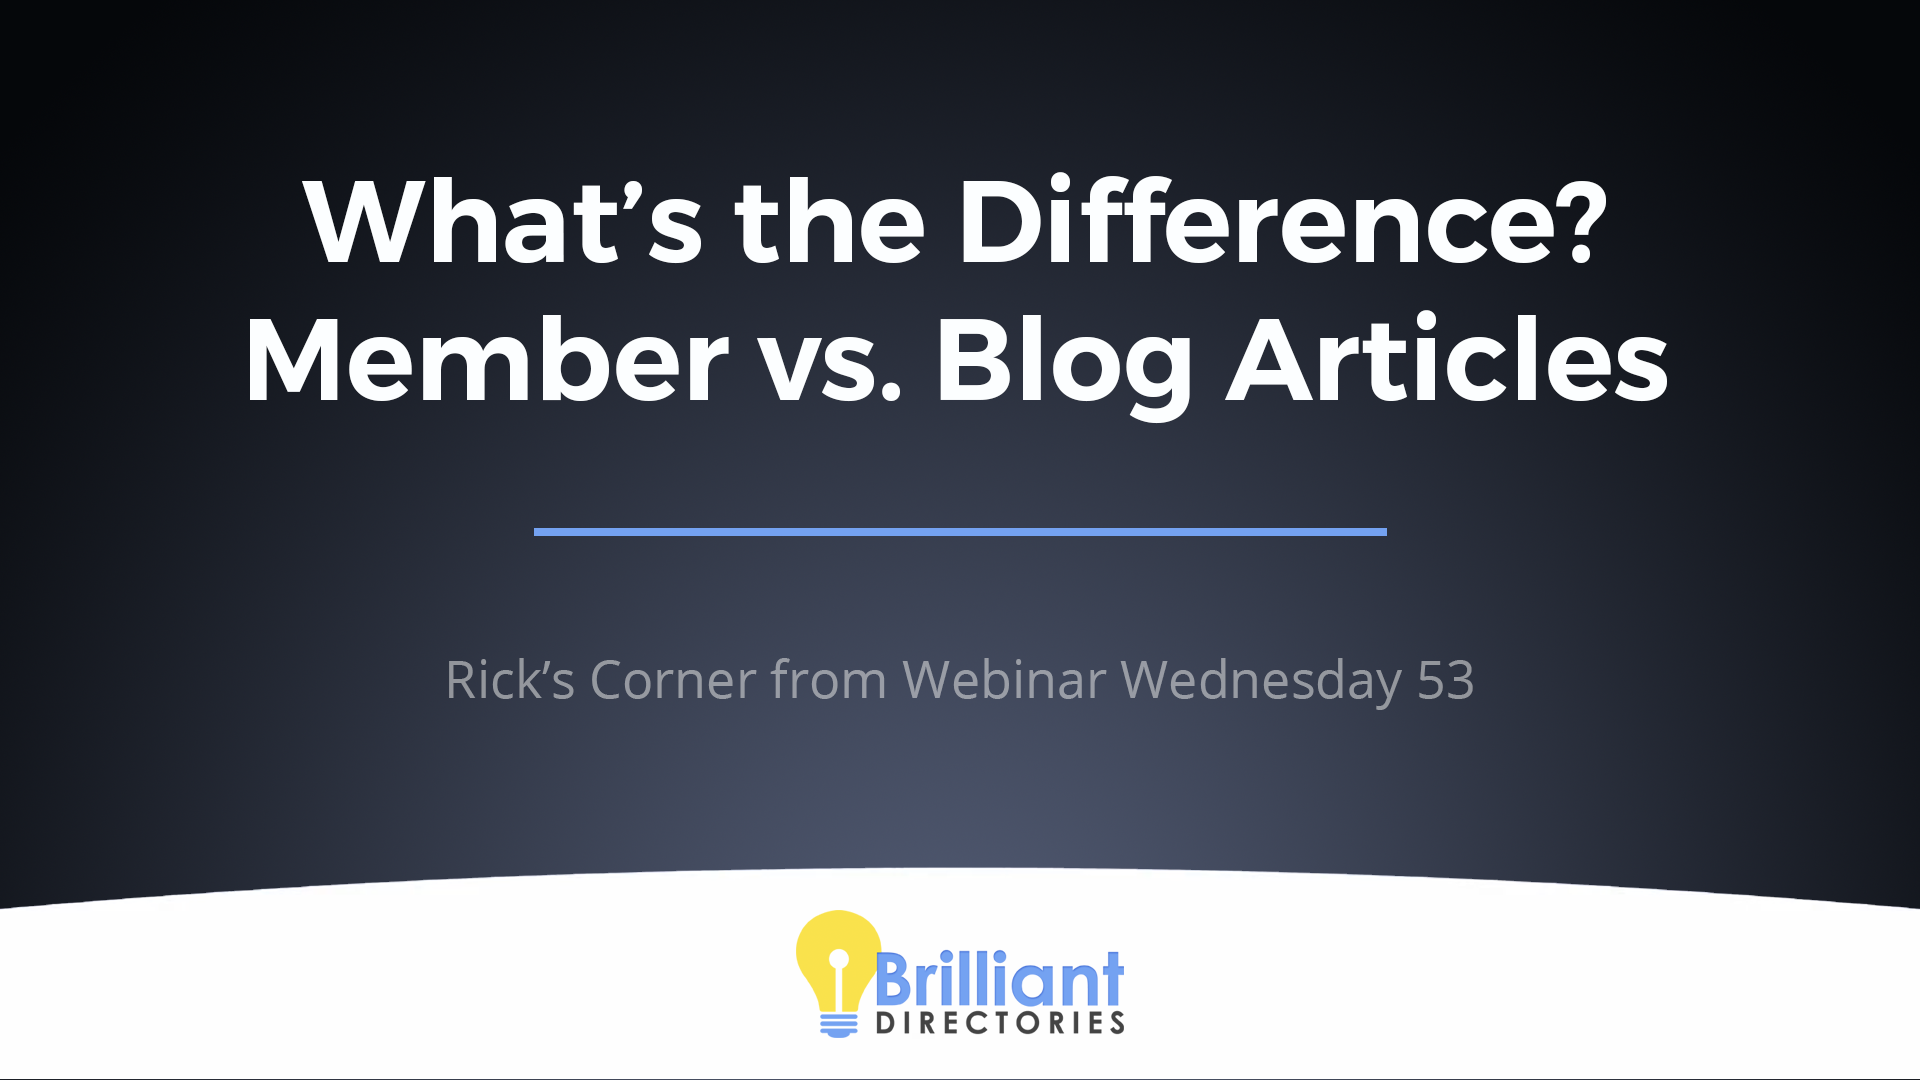 https://www.brilliantdirectories.com/blog/whats-the-difference-between-member-articles-vs-blog-articles-for-your-directory-website